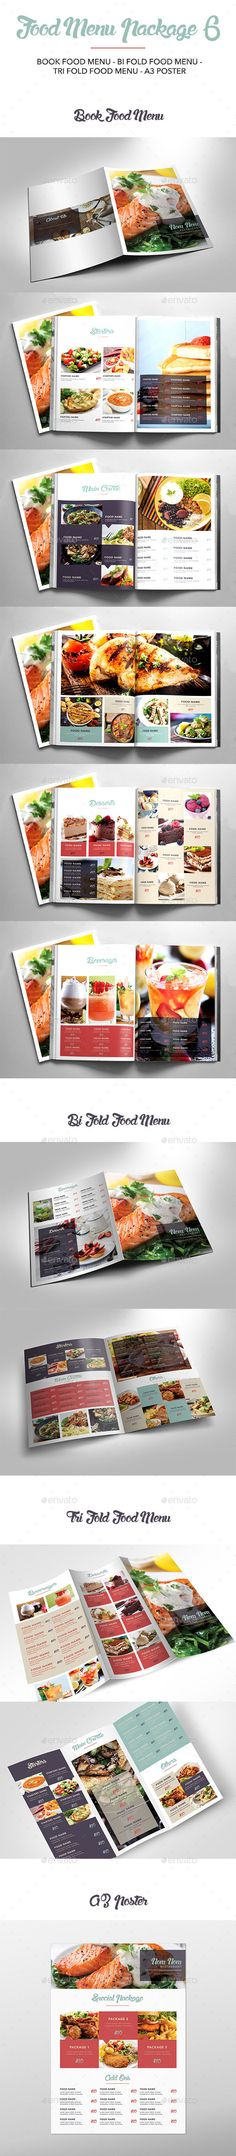 Food Menu Package Template InDesign INDD #design Download: http://graphicriver.net/item/food-menu-package-6/14390813?ref=ksioks